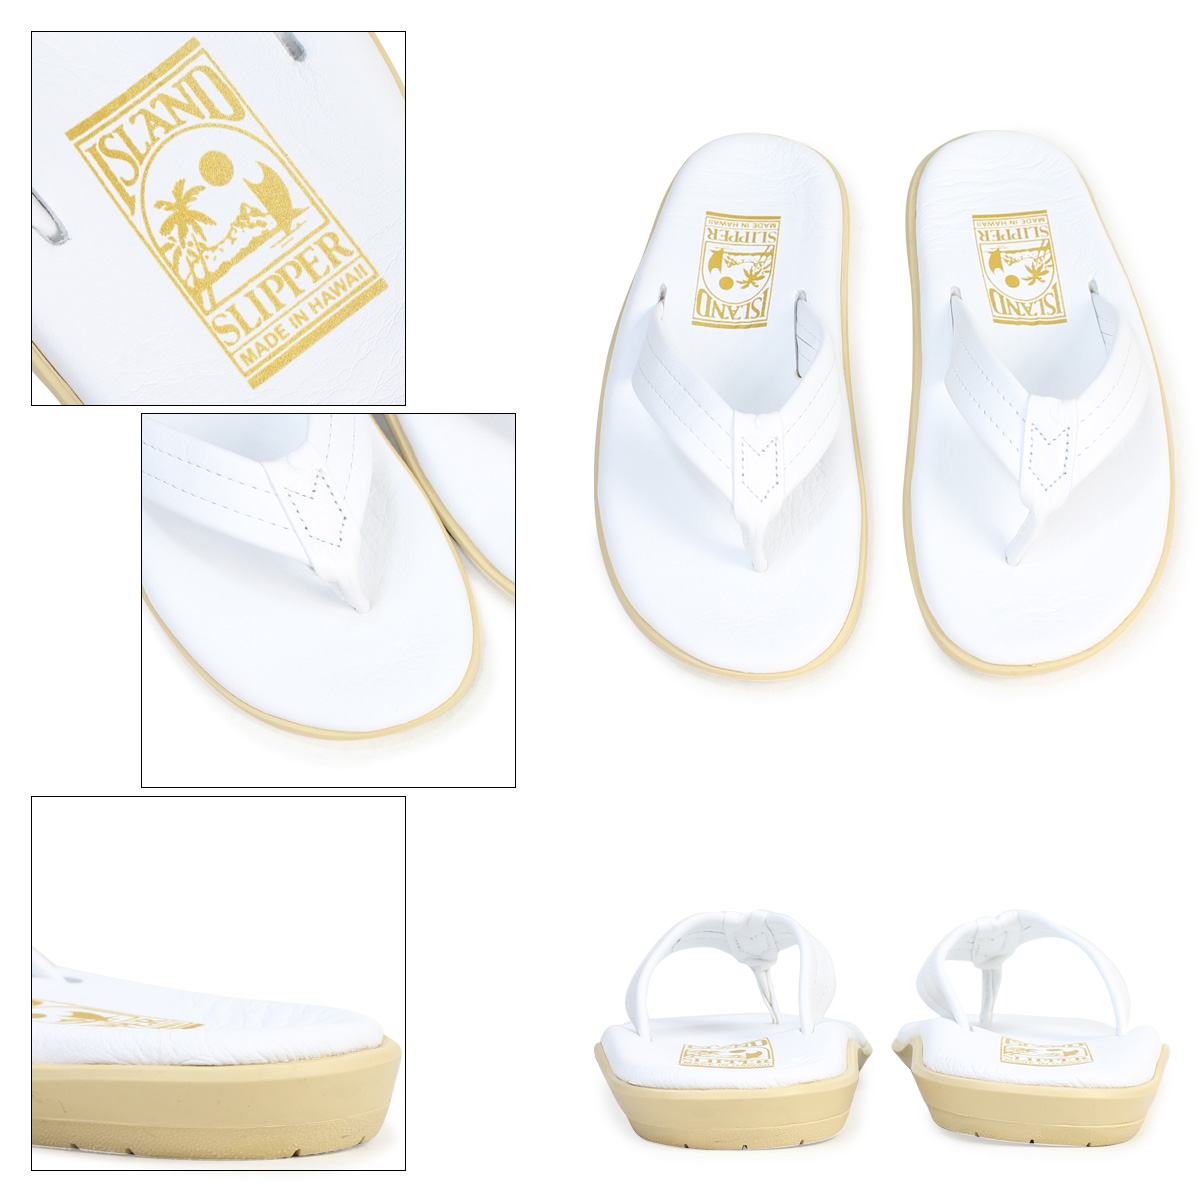 a991f316d078 ISLAND SLIPPER island slippers Lady s PT202 sandals tong sandals leather  beach sandal LEATHER 4